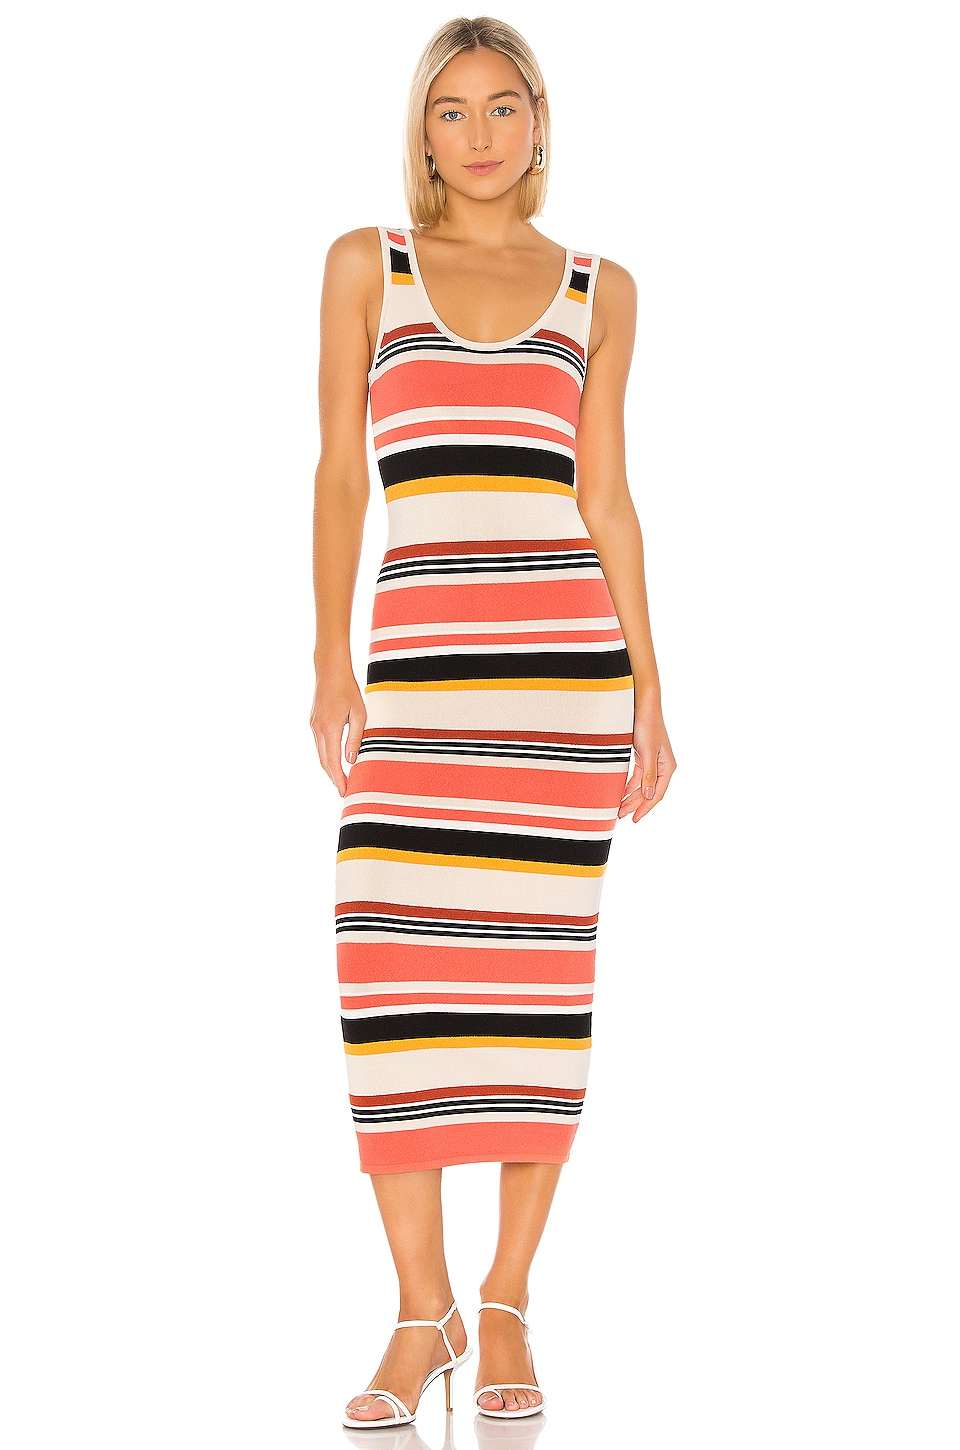 Ronny Kobo Latrice Dress in Rust Multi